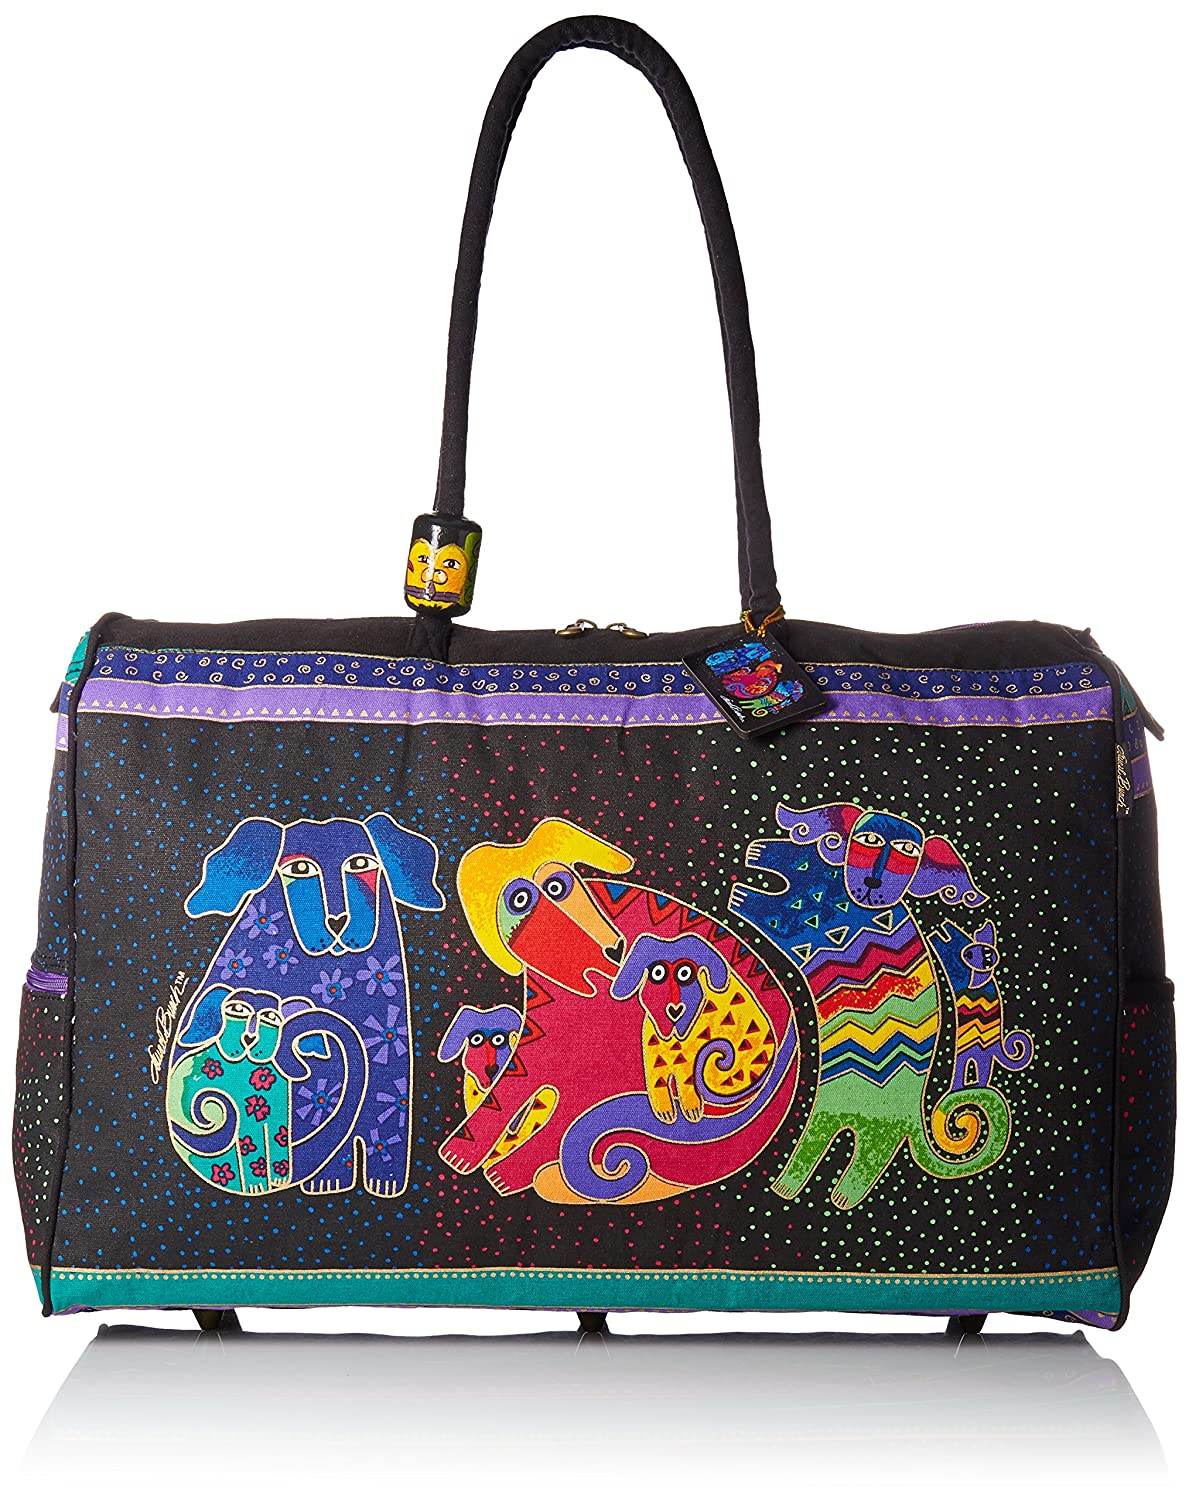 Laurel Burch Artistic Totes Travel Bag, Dogs and Doggies LB2072